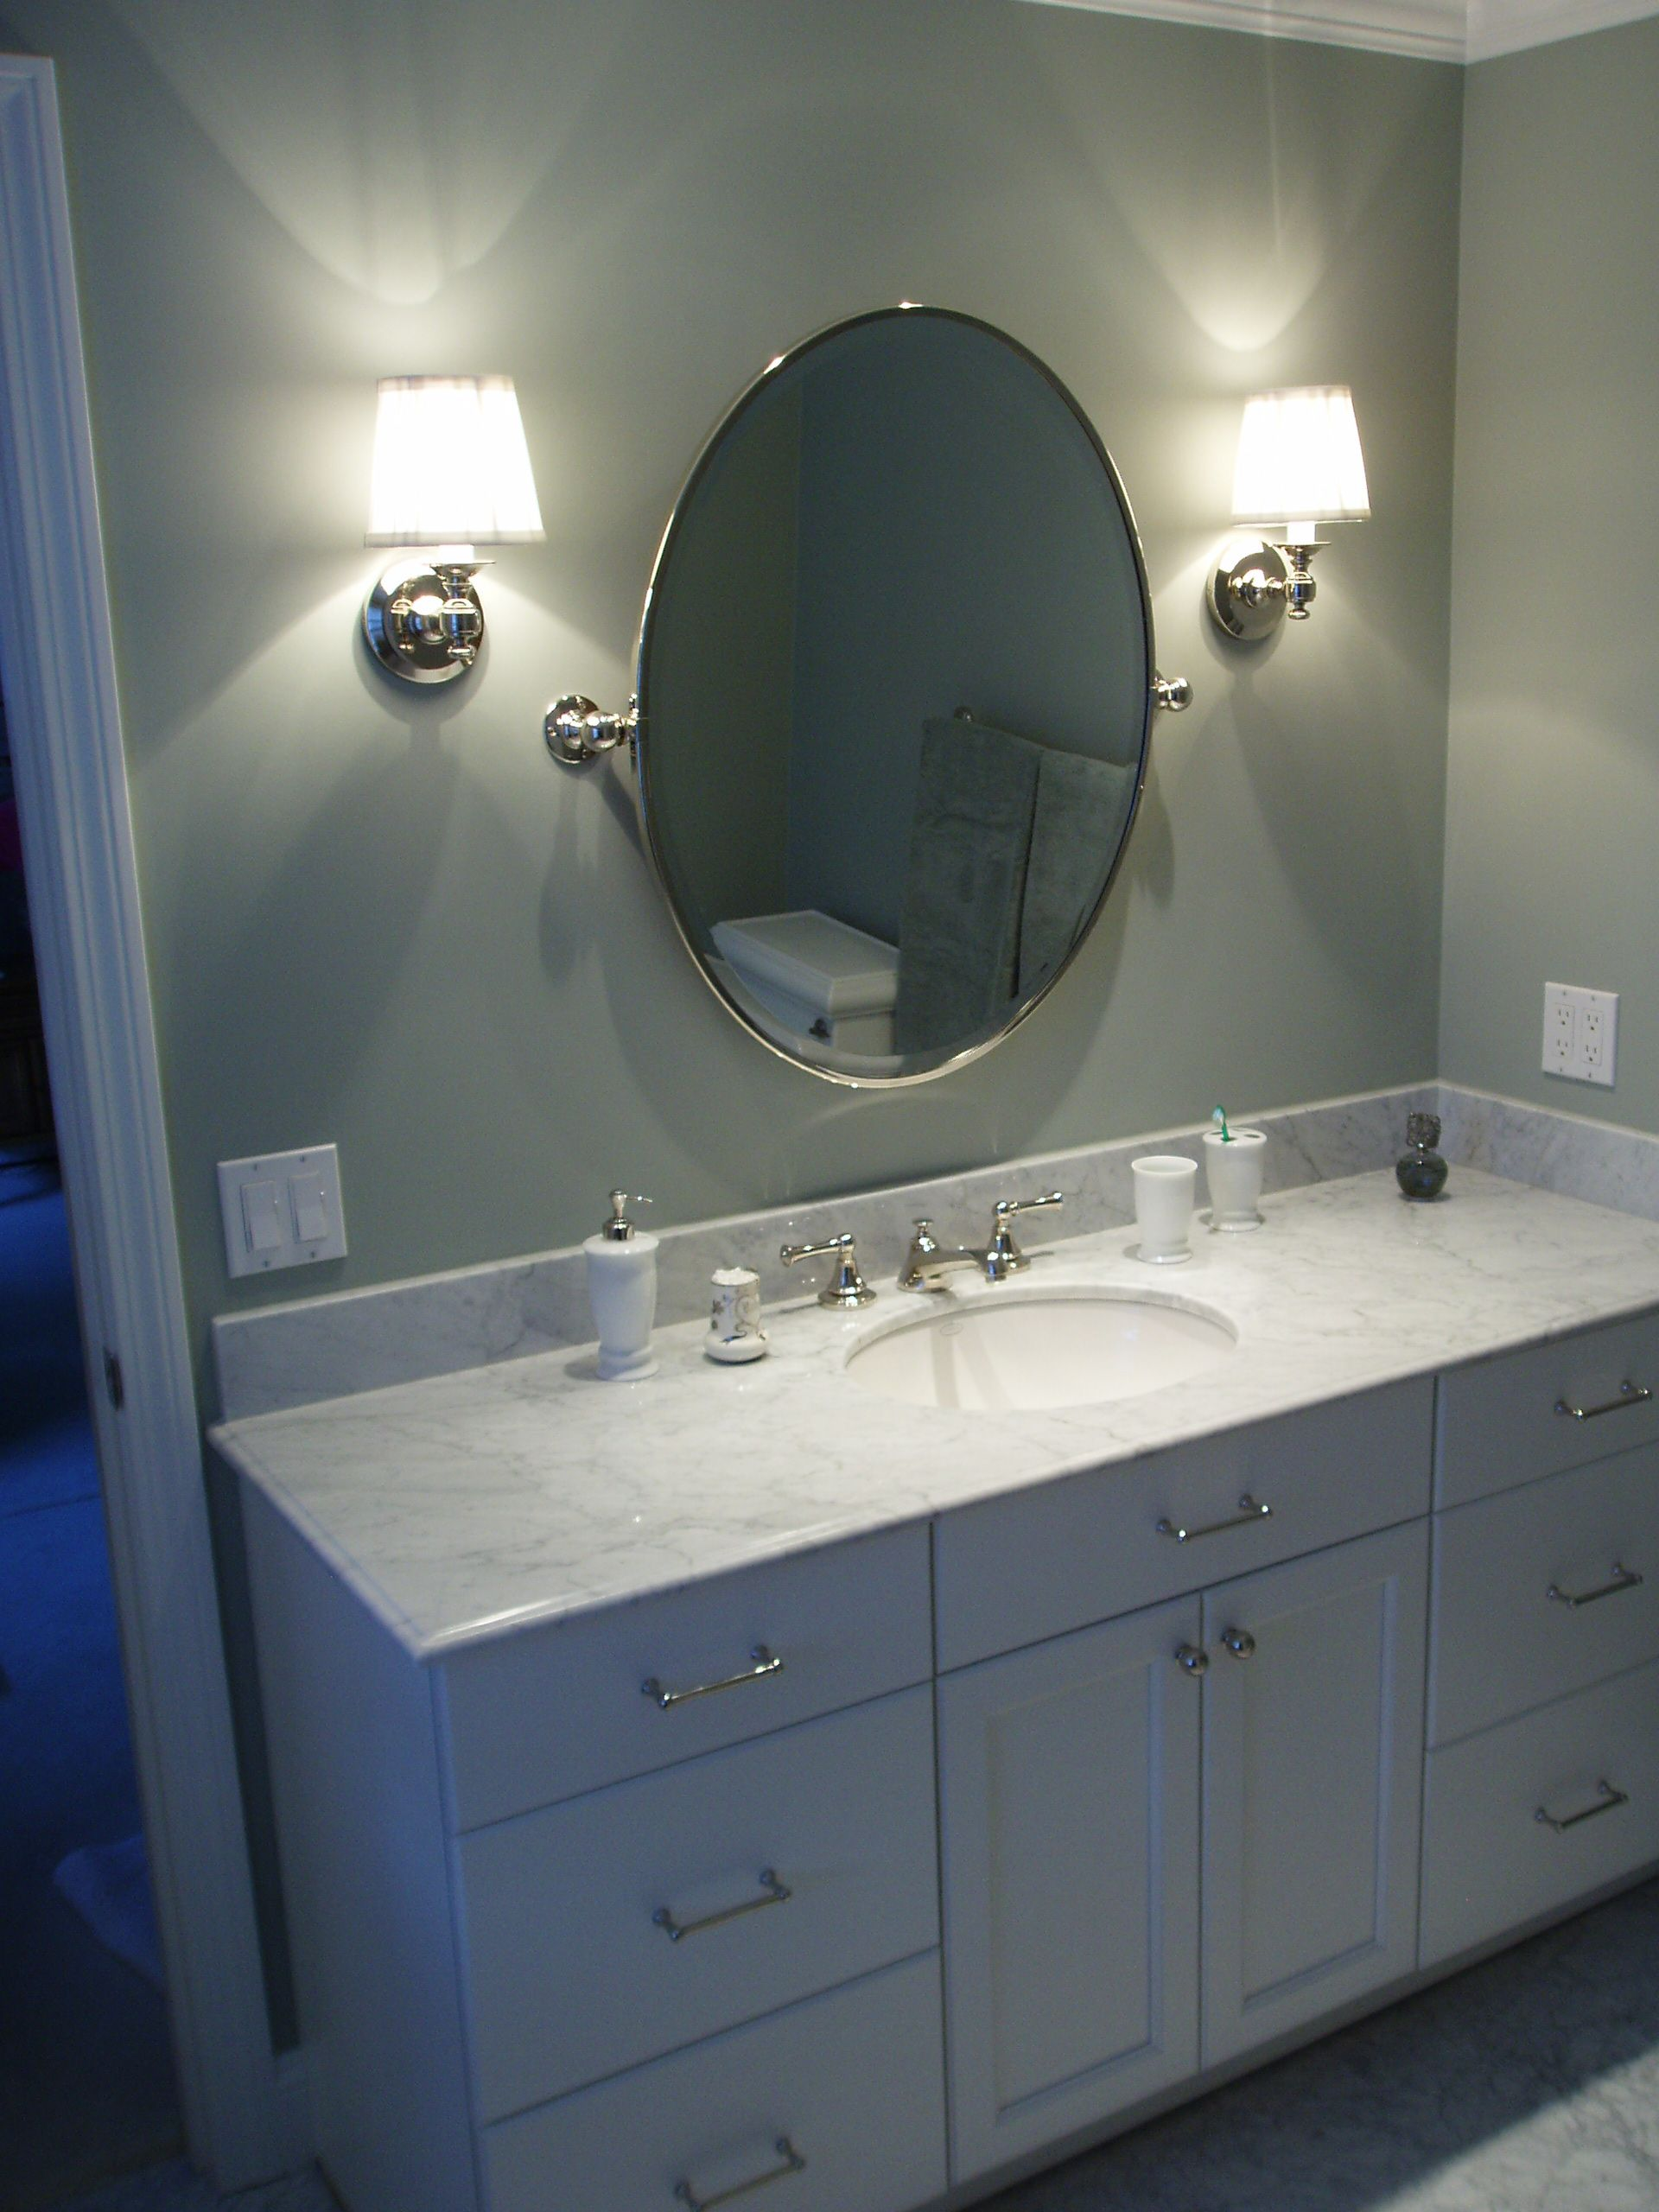 Classic bathroom vanity design White vanity carrera marble